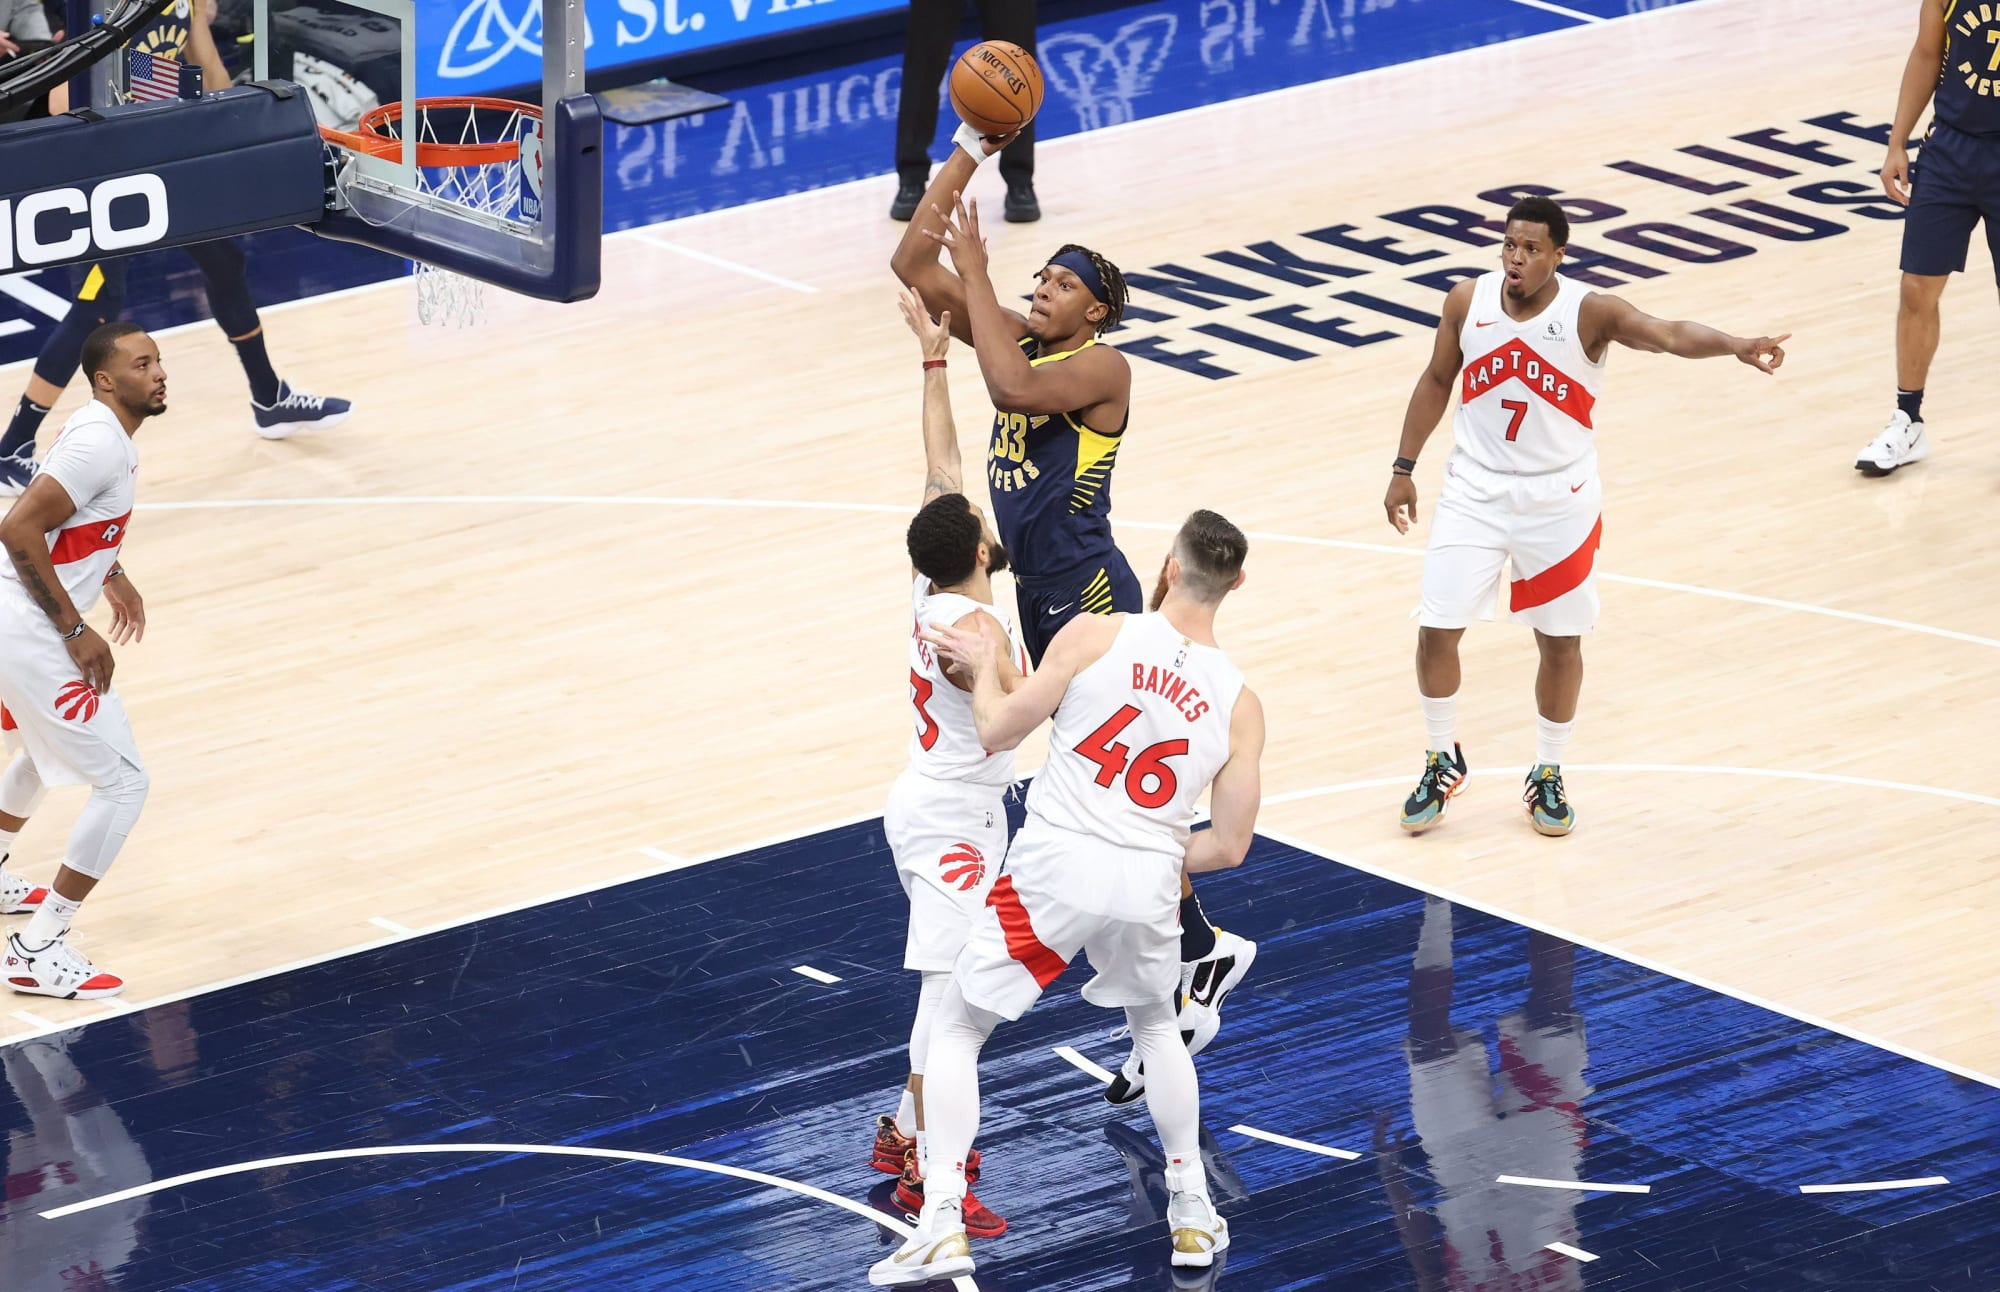 Why the Myles Turner injury could push the Toronto Raptors to the playoffs